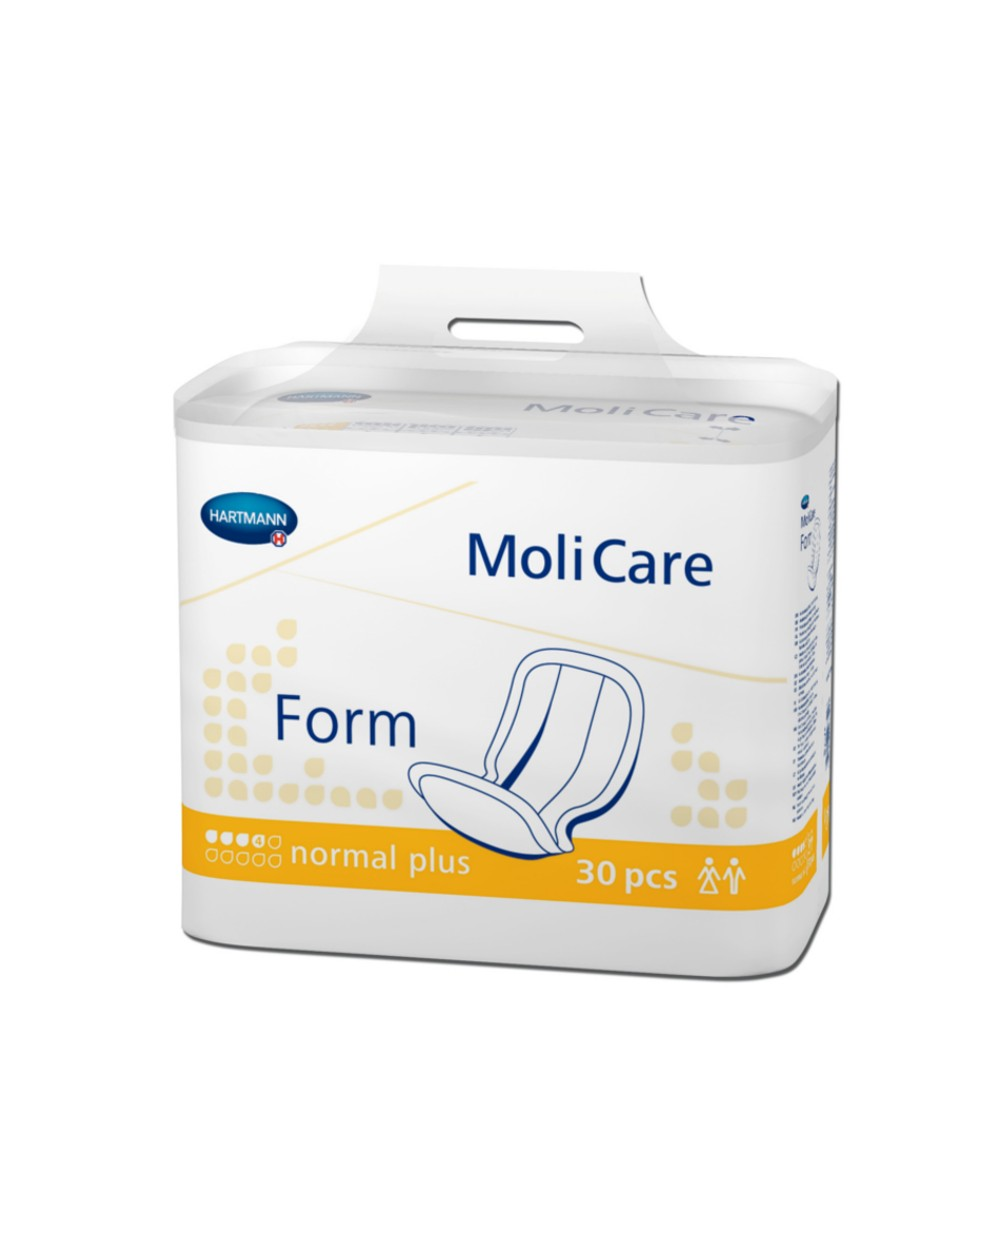 Hartmann Molicare Form Normal Plus - 30 protections